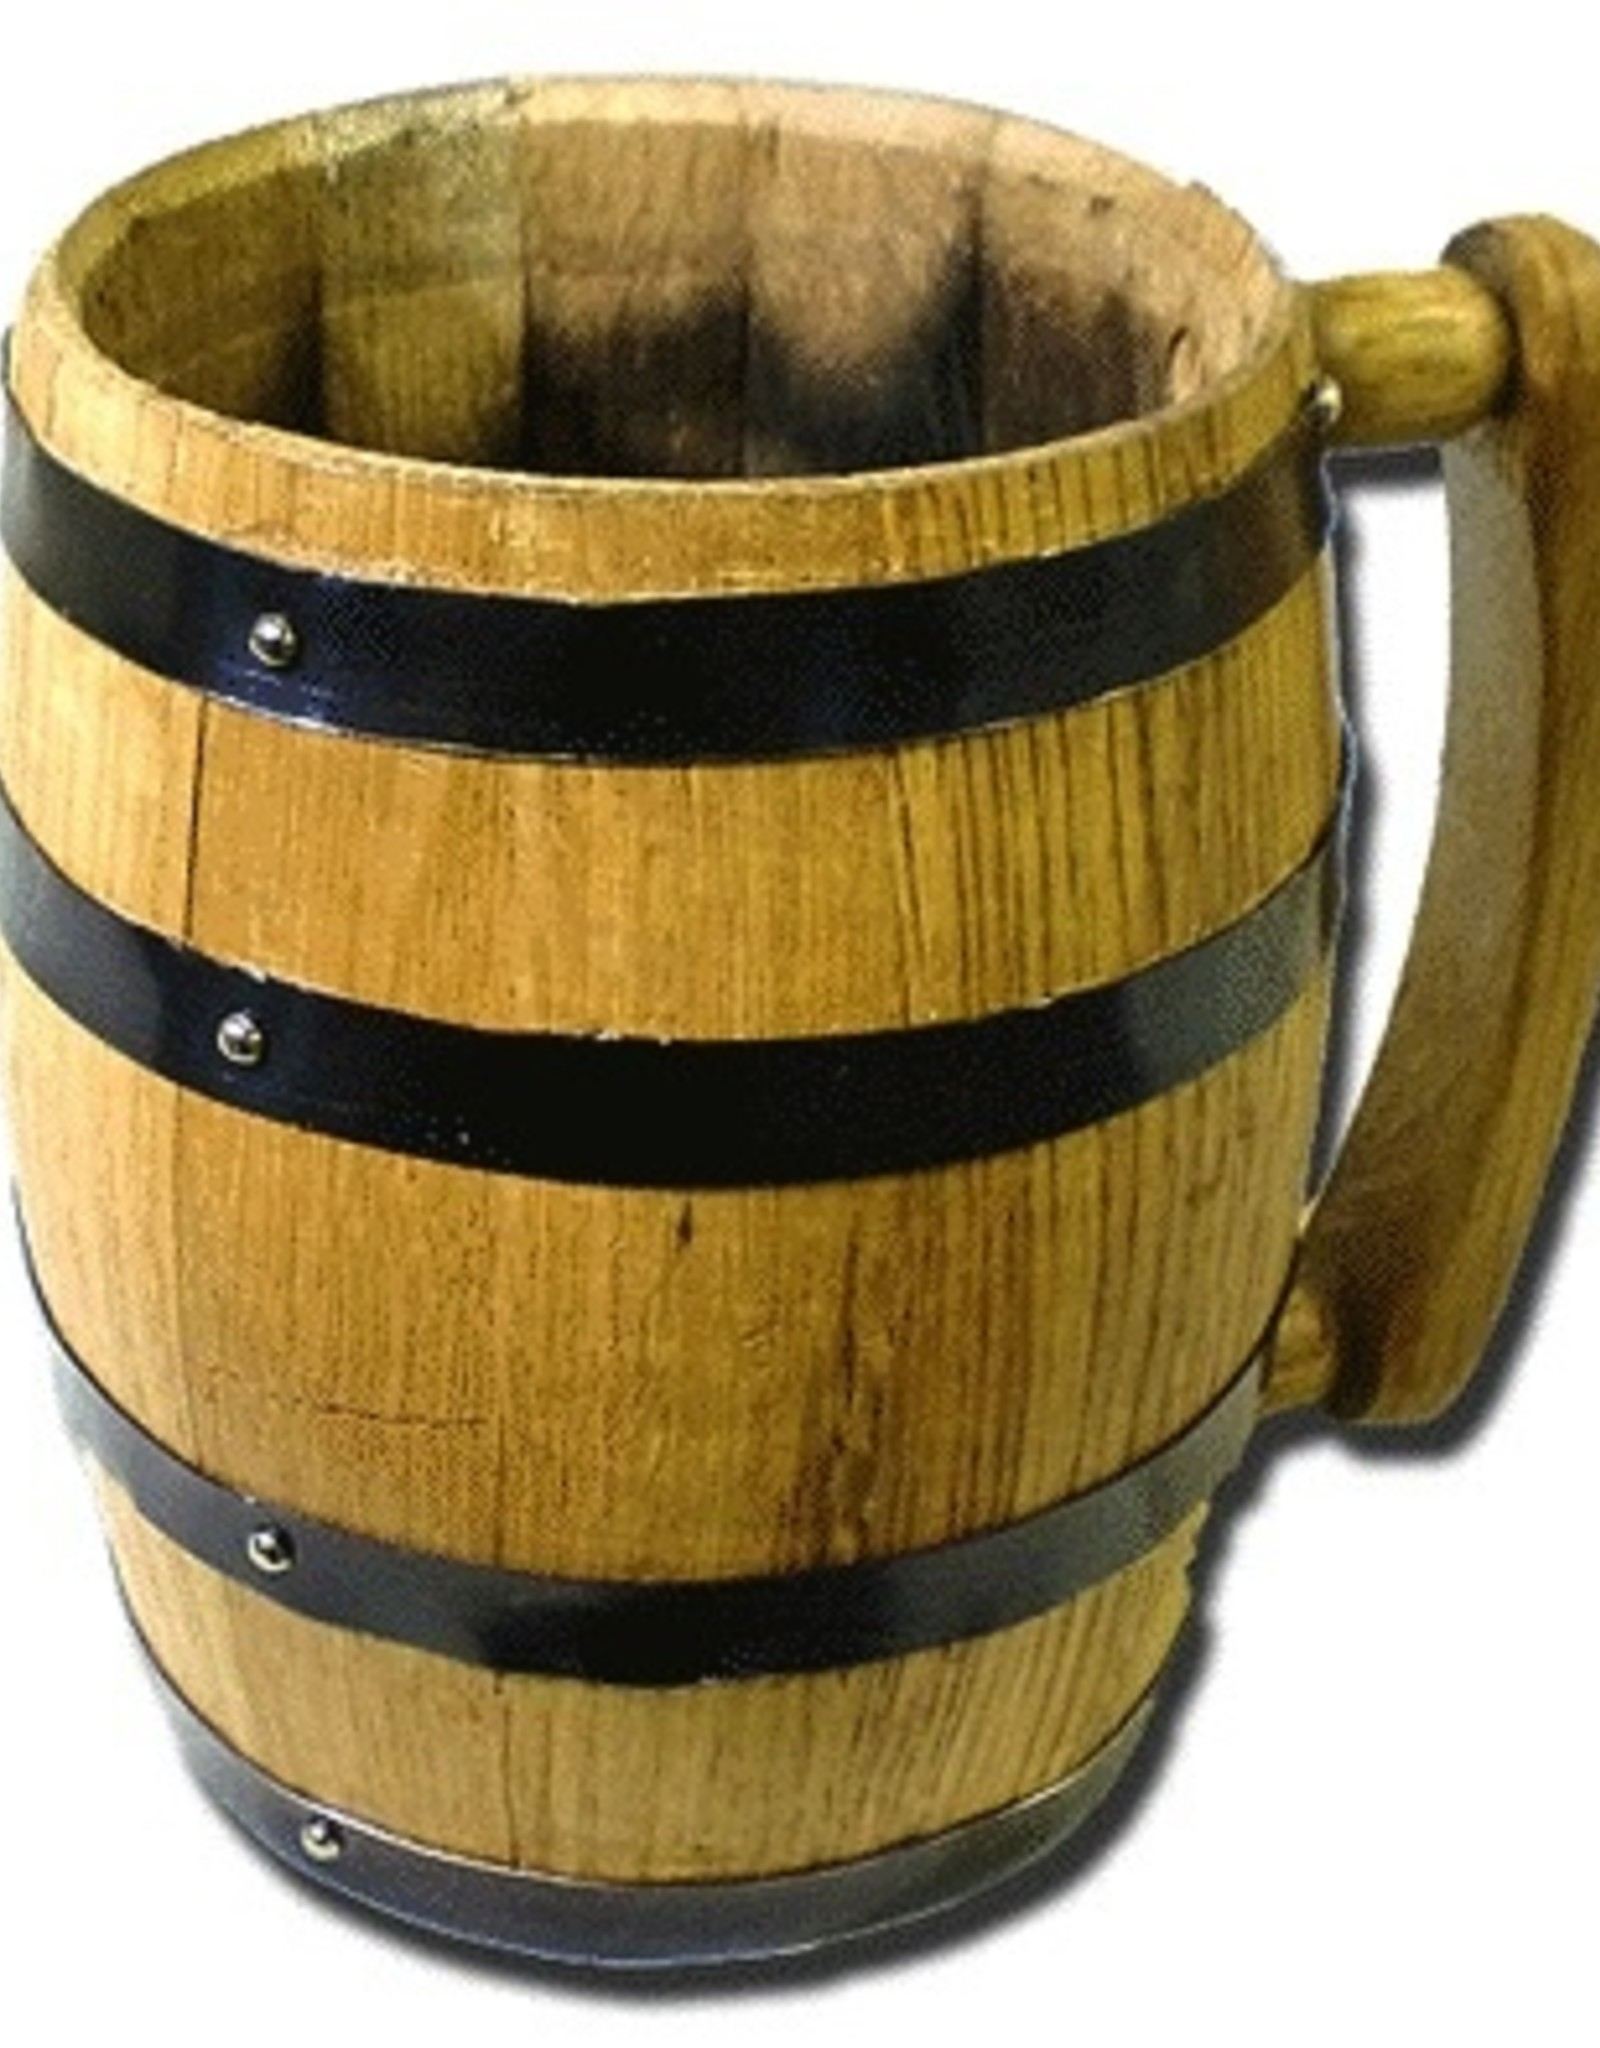 1000 OAKS Barrel Mug w/ Black Hoops<br />